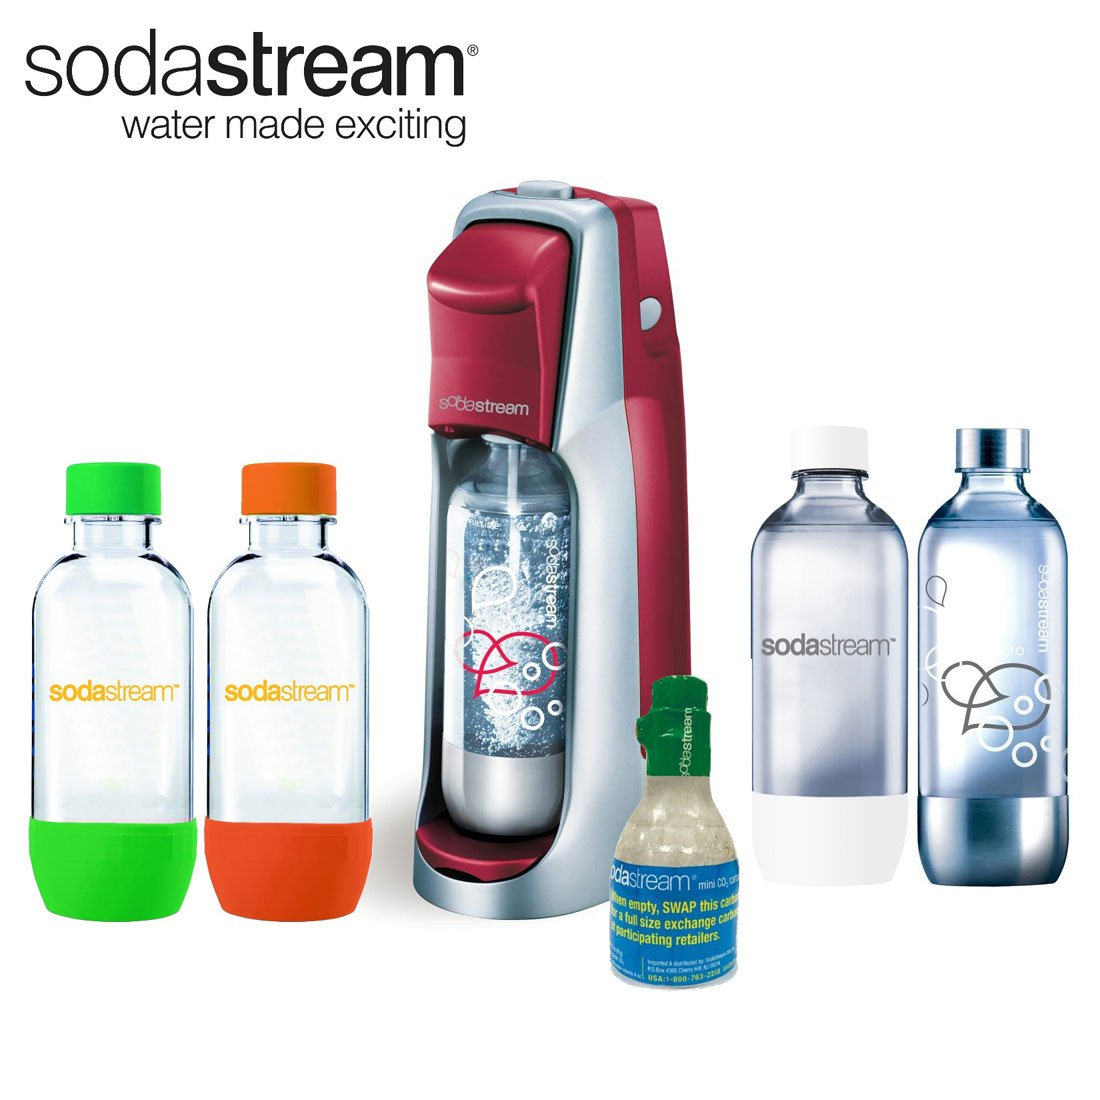 SodaStream Fountain Jet Soda Maker in Red with Exclusive Kit 4 Bottles & Mini CO2